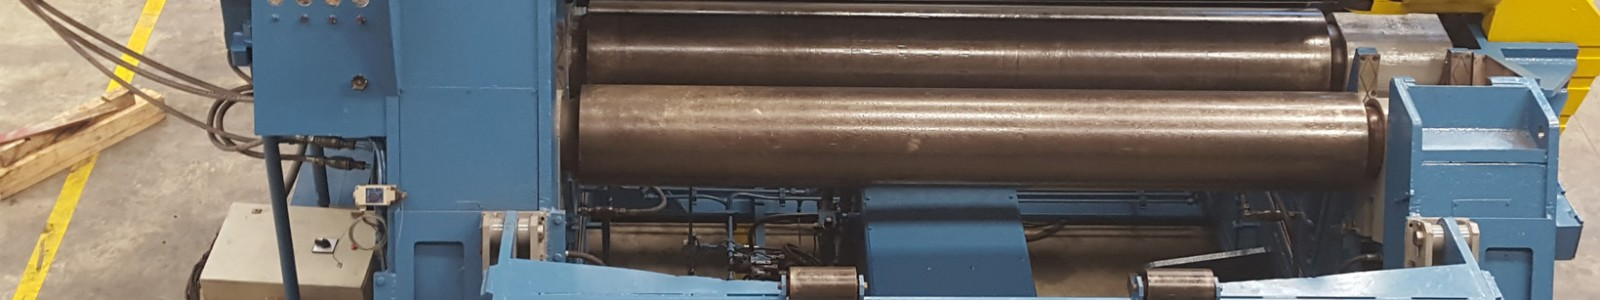 The bending rolls are sheet metal forming machines